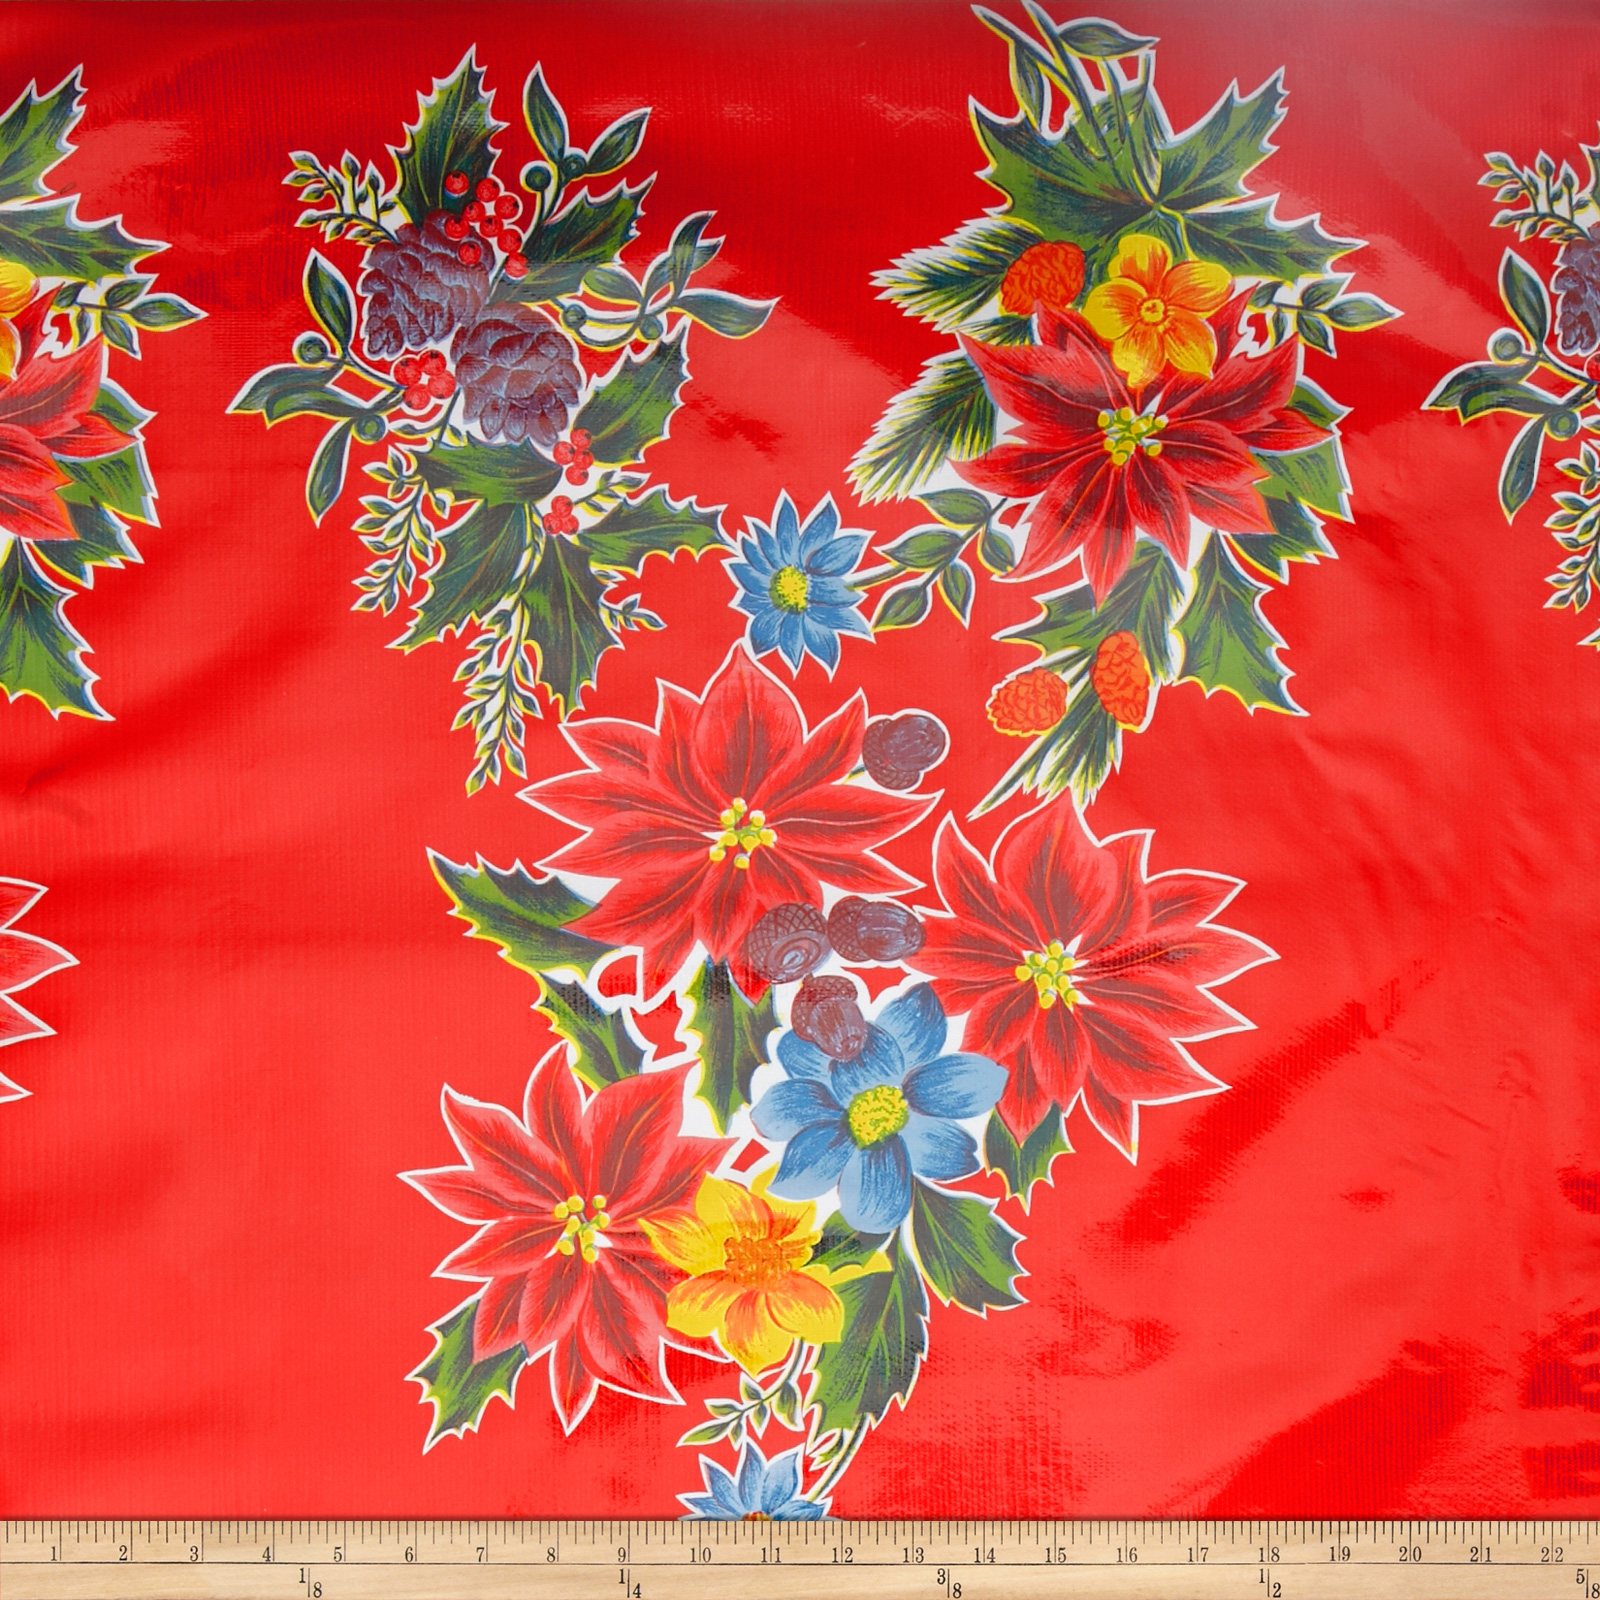 Oil Cloth Poinsettias Red Fabric by Oilcloth International in USA